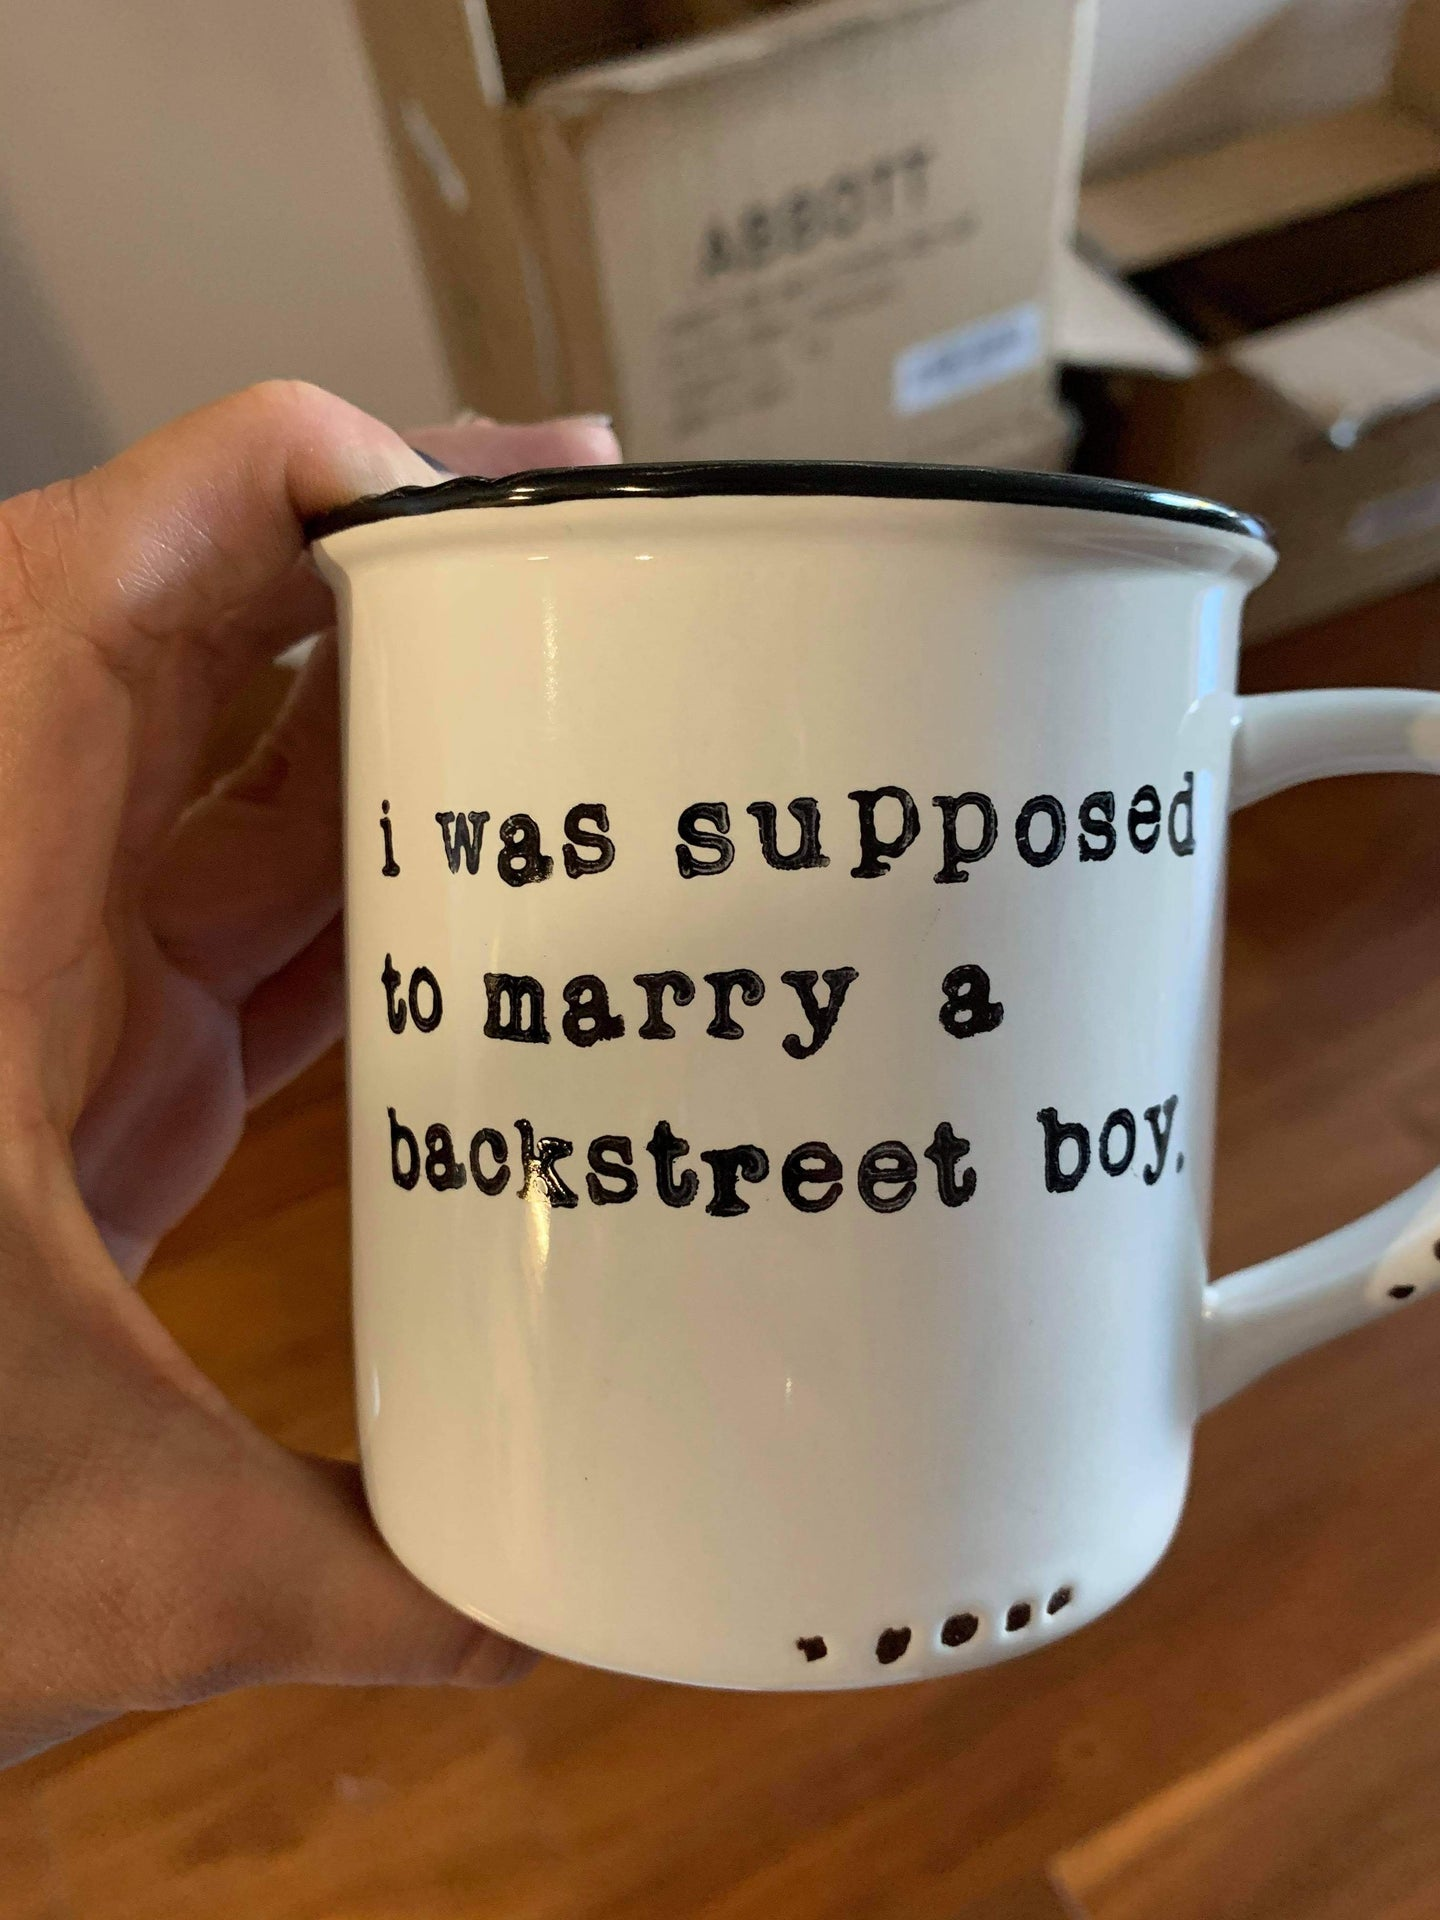 I was supposed to marry a back street boy